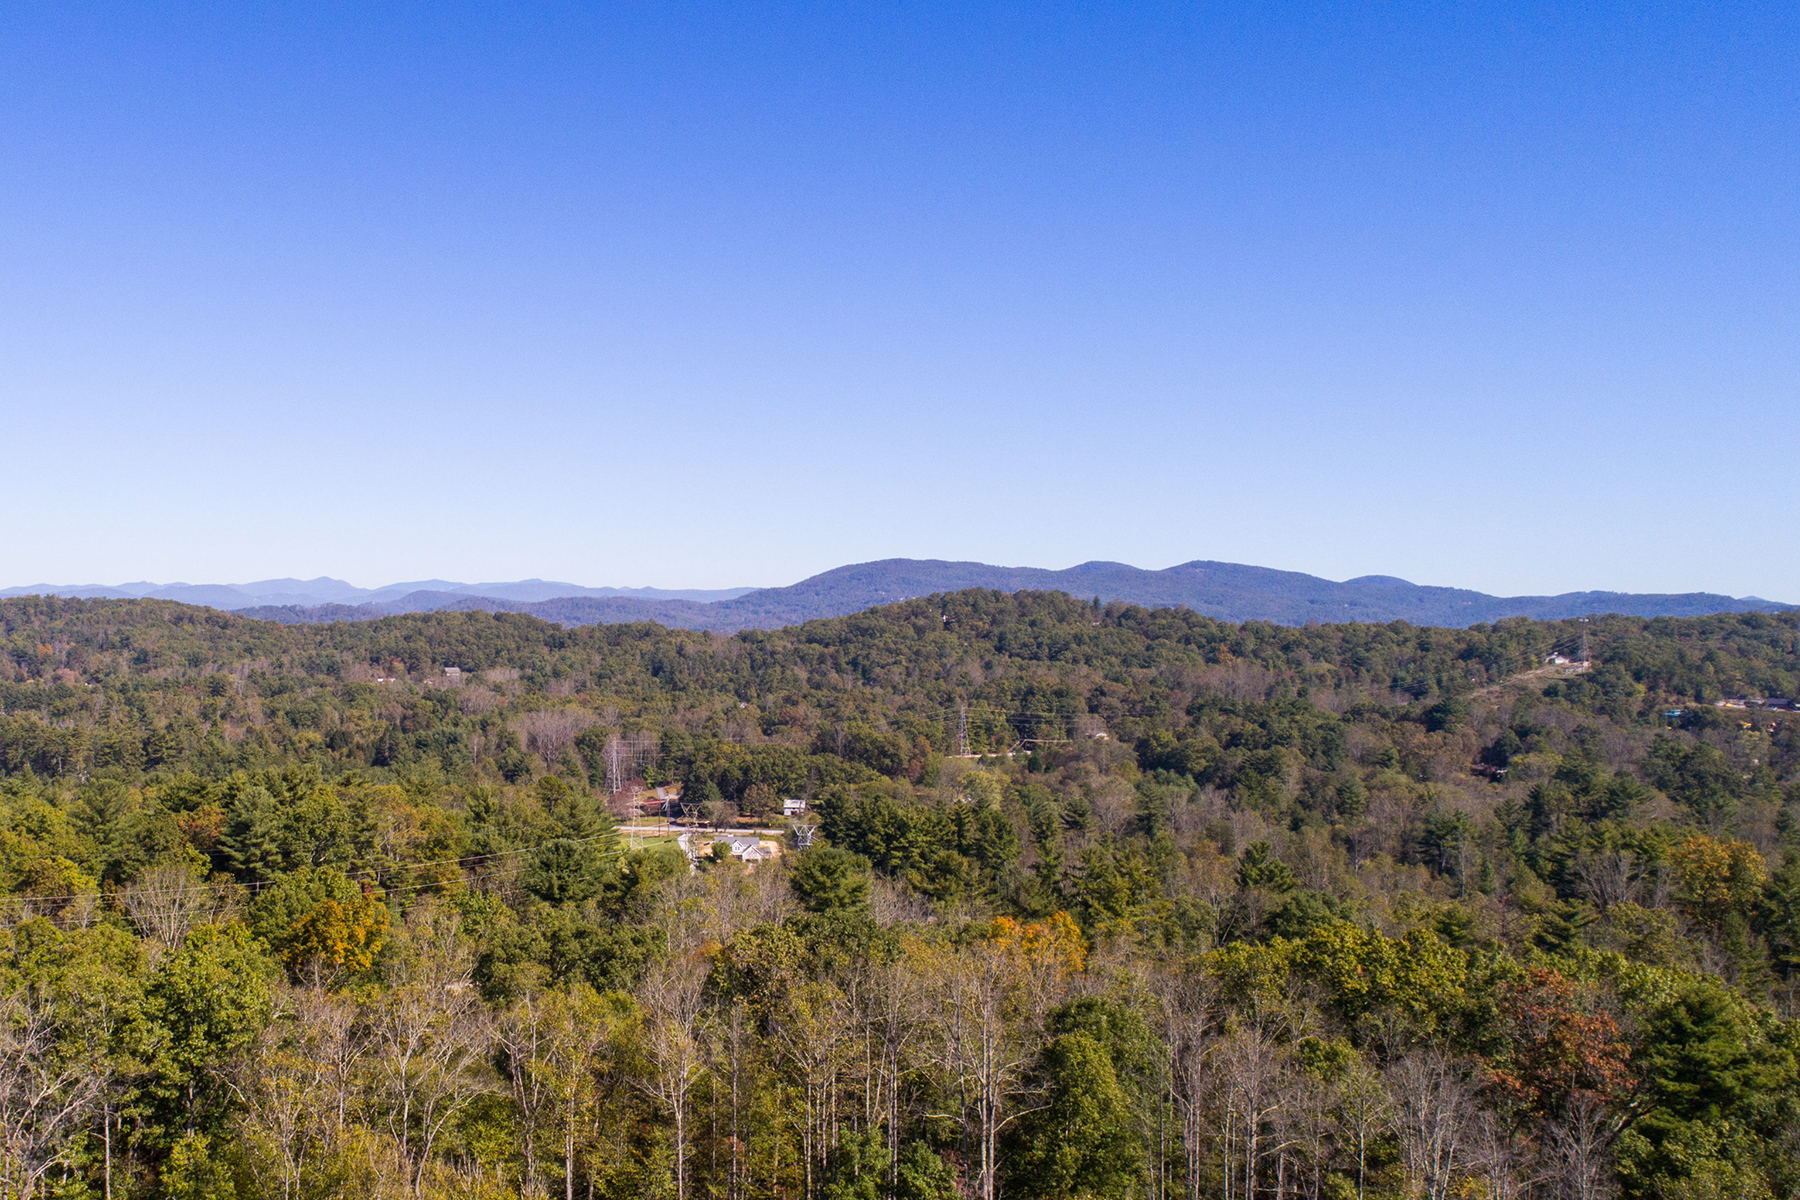 Land for Sale at CARRIAGE PARK 333 Carriage Crest Dr 1532, Hendersonville, North Carolina 28791 United States